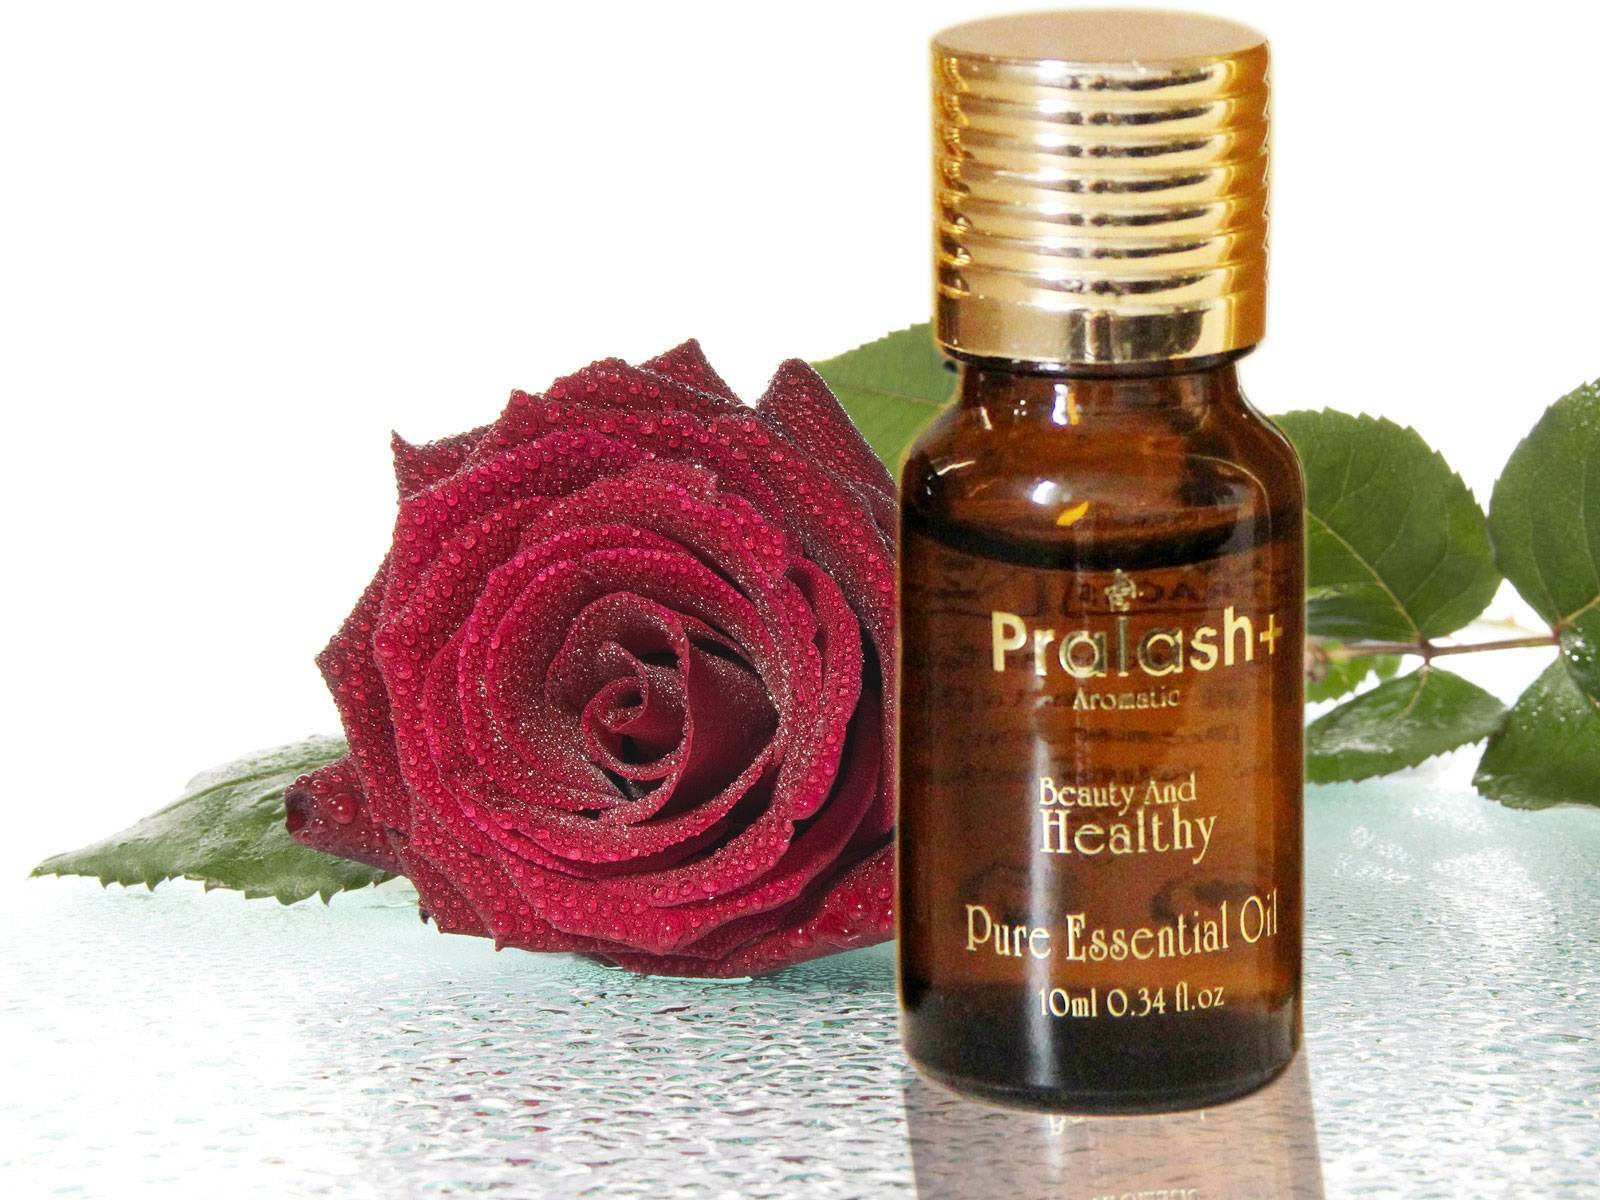 Pralash pure rose essential oil for whitening